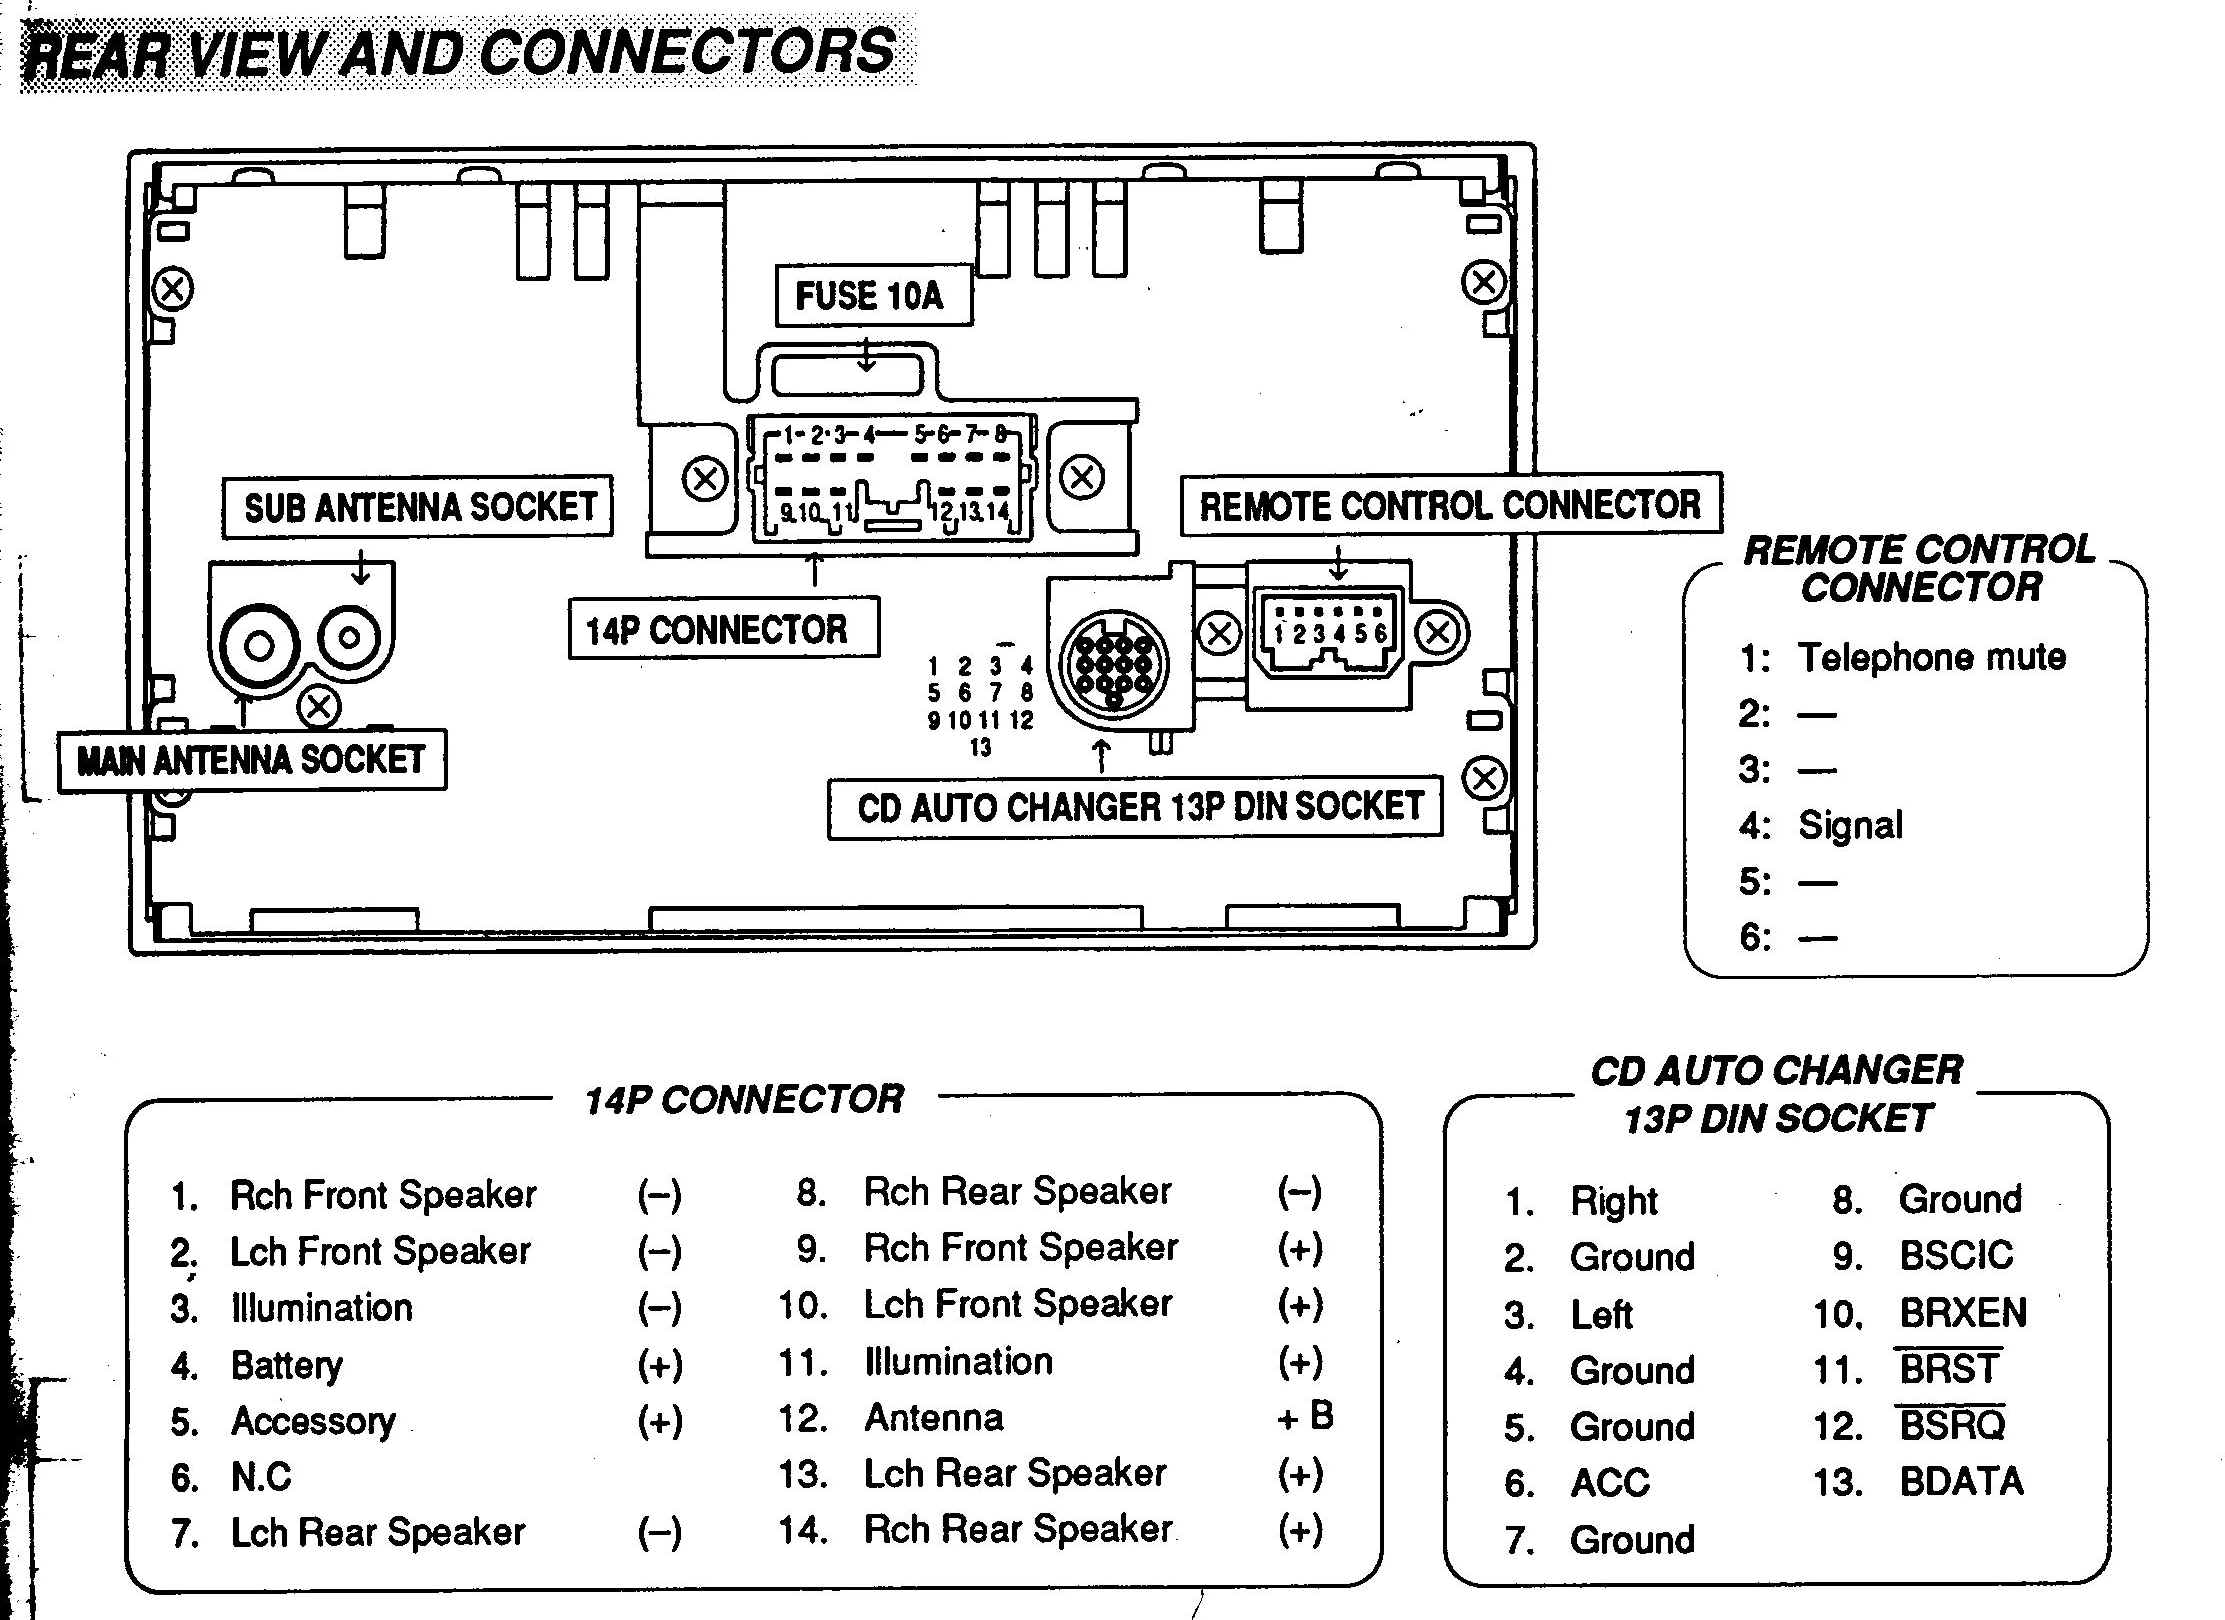 car audio wire diagram codes mitsubishi - factory car stereo ...  car radio repair, we know bose stereo repair